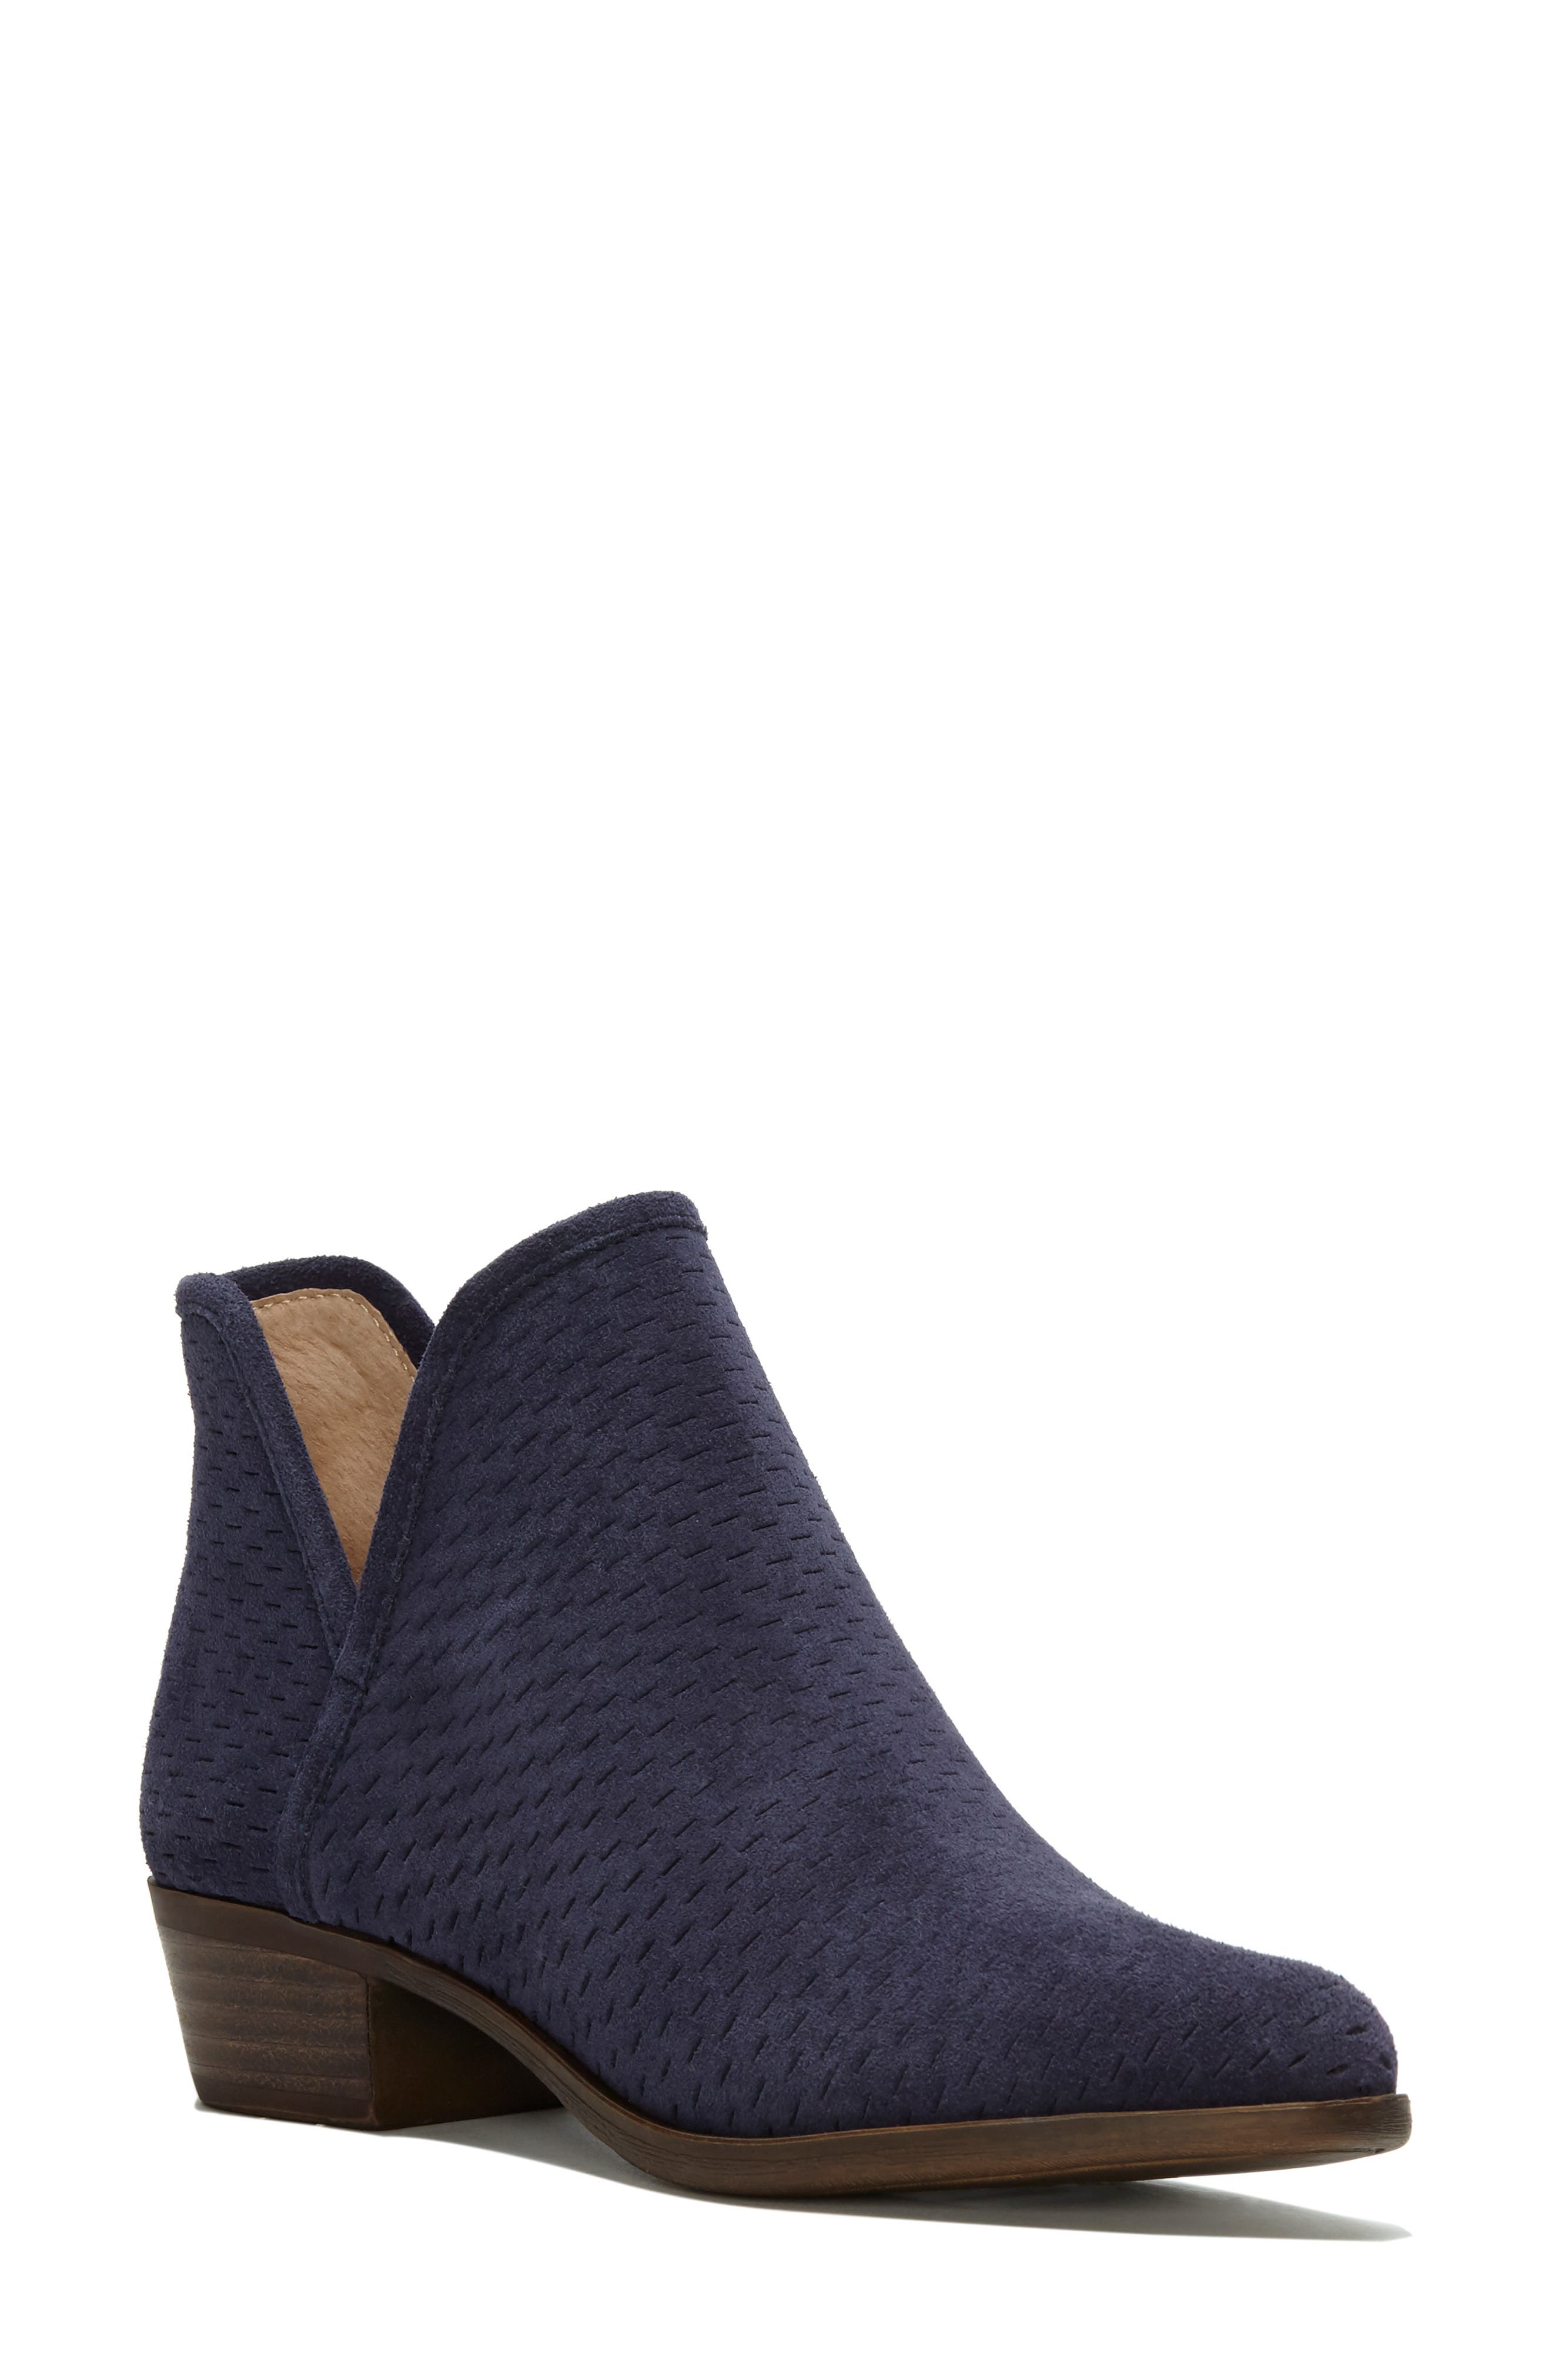 Baley Bootie,                             Main thumbnail 1, color,                             MOROCCAN BLUE SUEDE